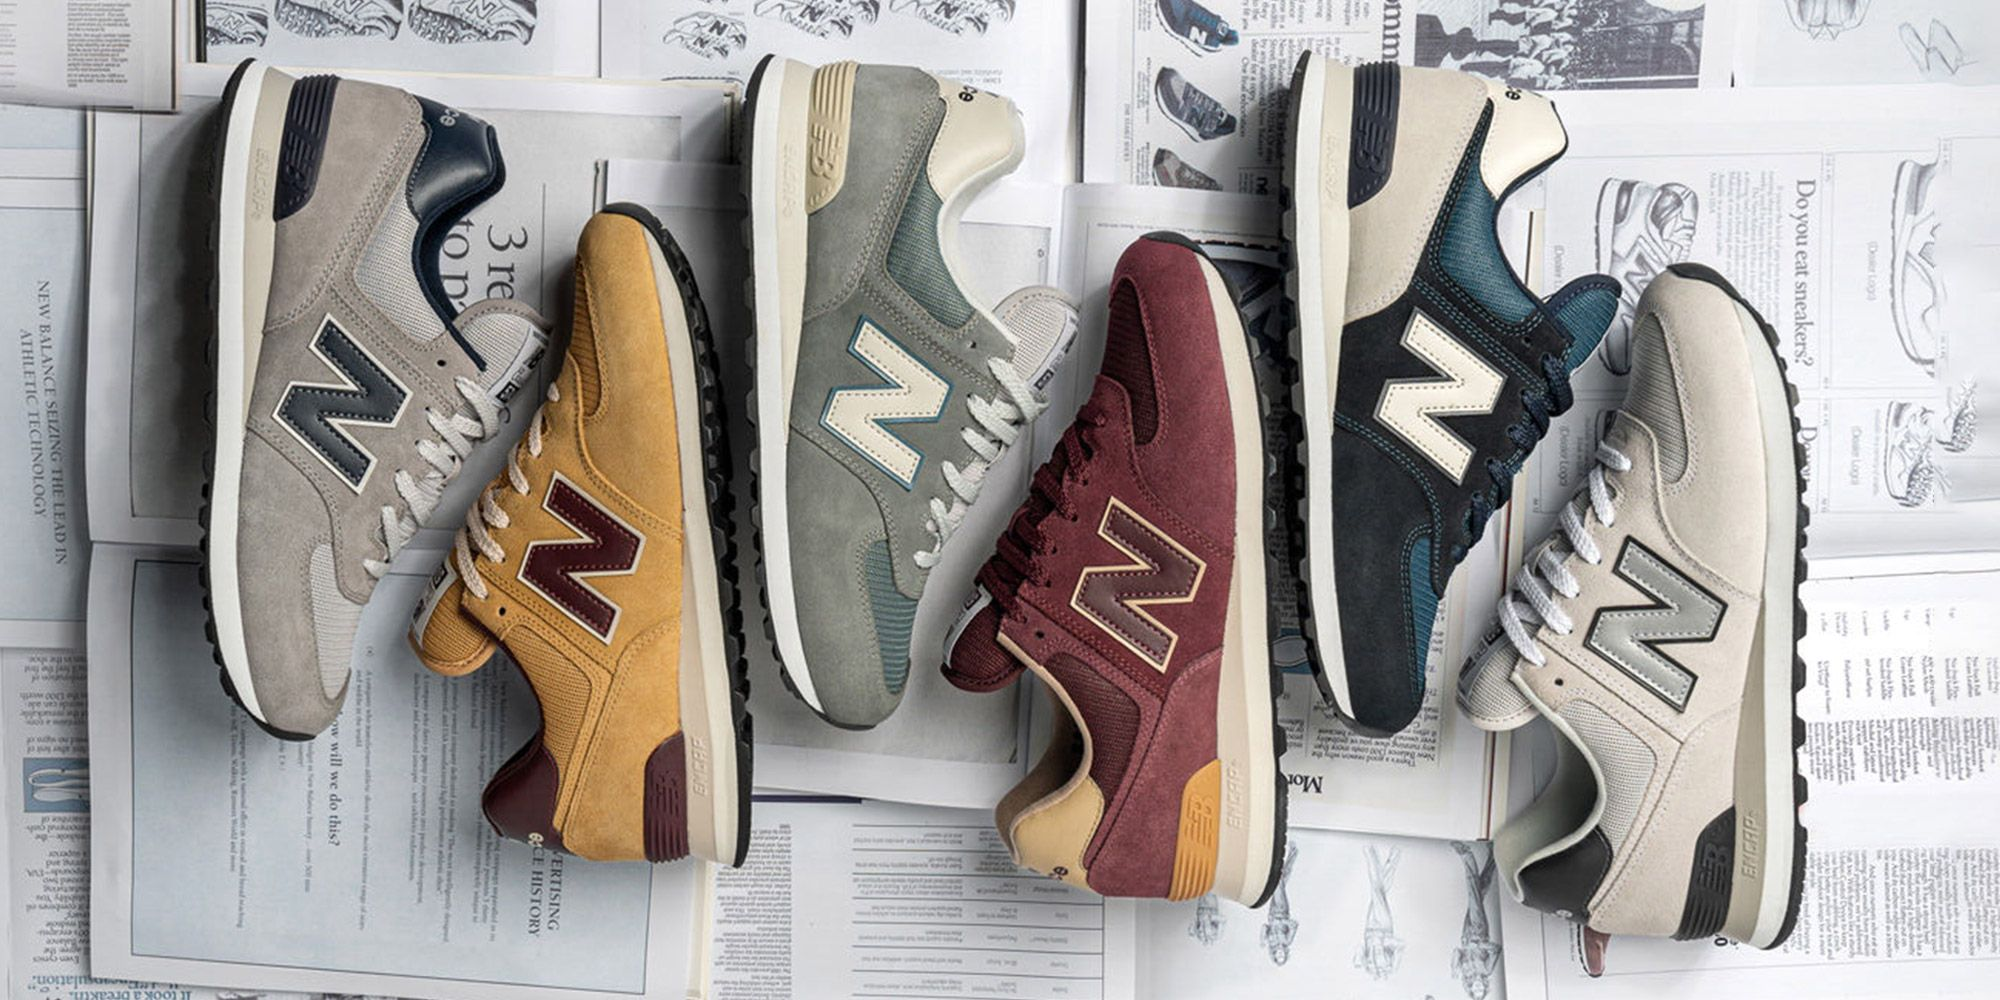 You Can't Knock a Classic: Reviewing New Balance's 574 Sneaker